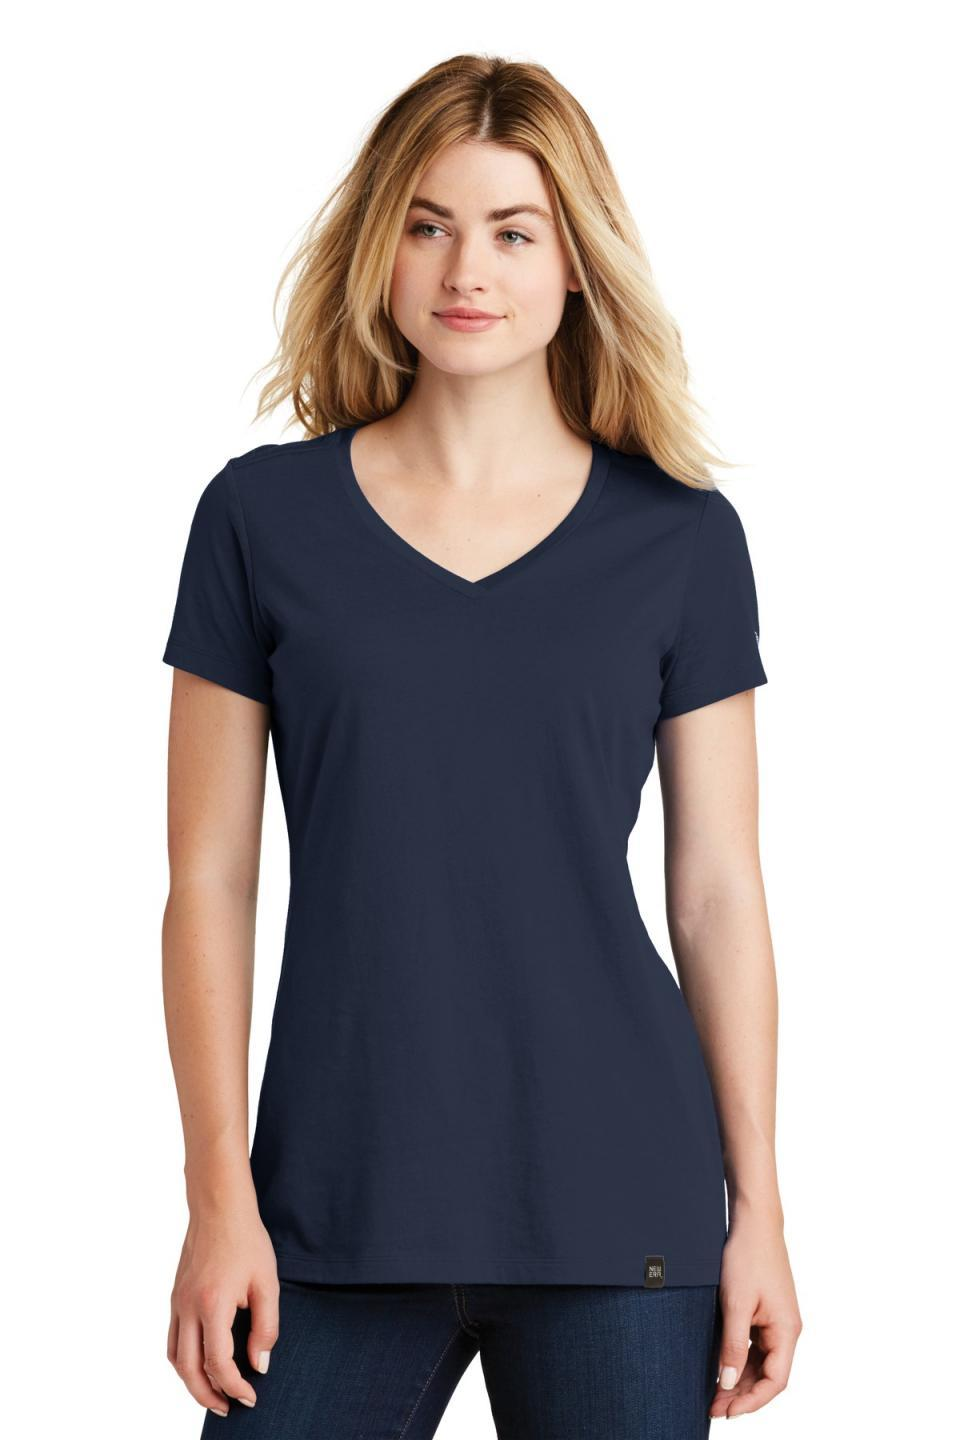 color-Navy